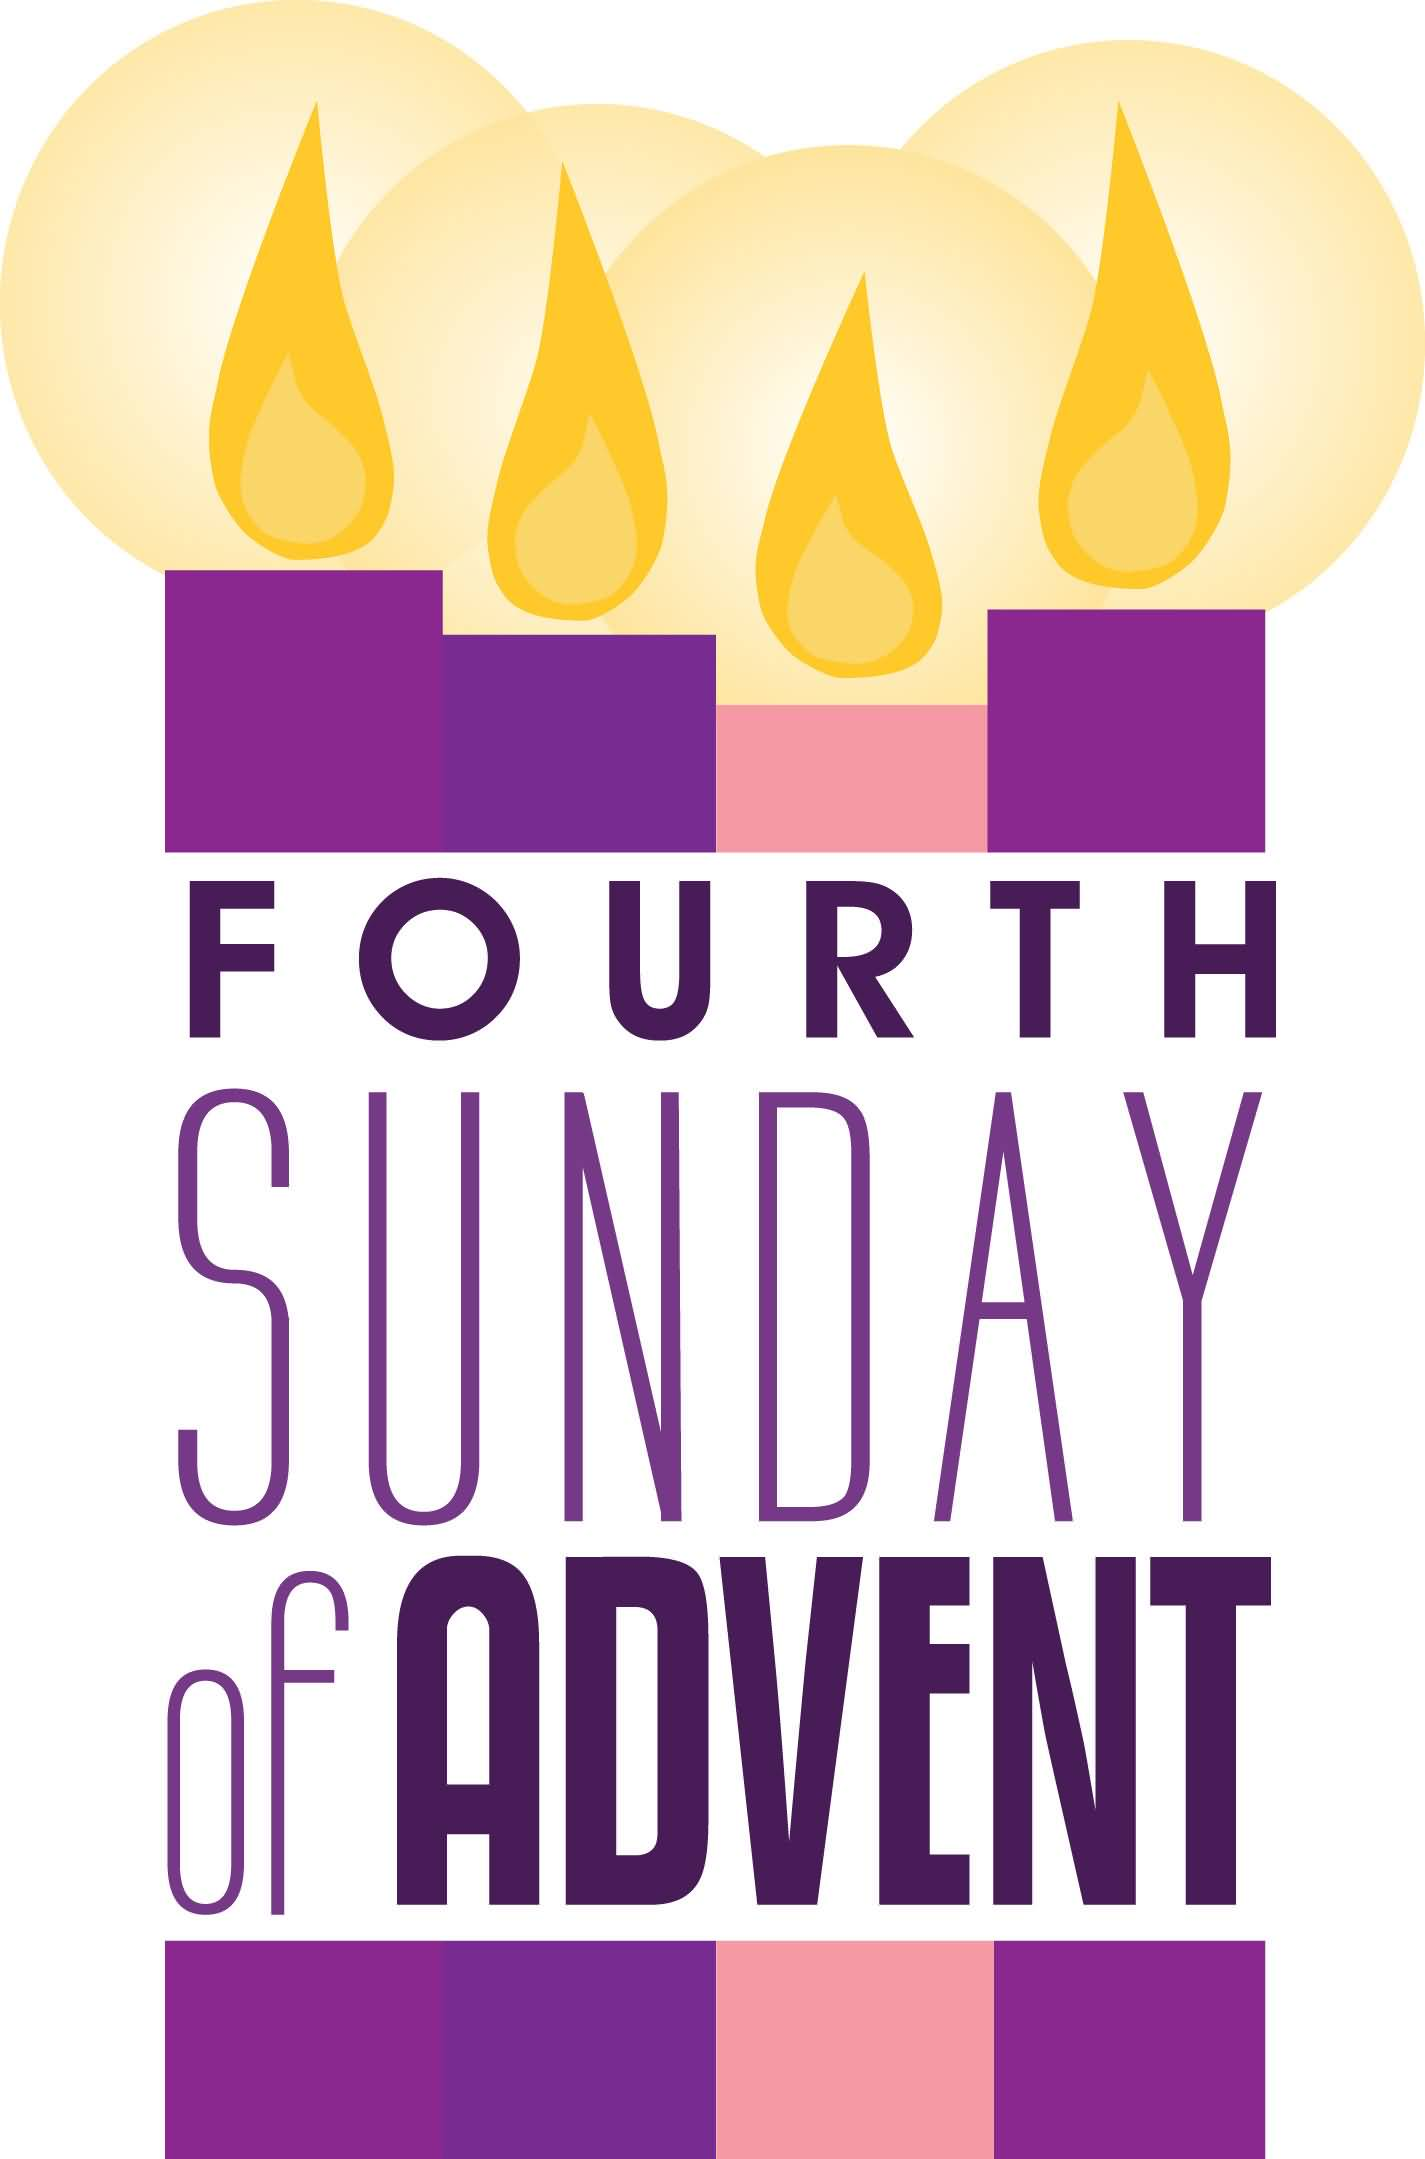 Fourth sunday of advent wreath clipart free black and white 50 Adorable Advent Wish Pictures And Photos black and white